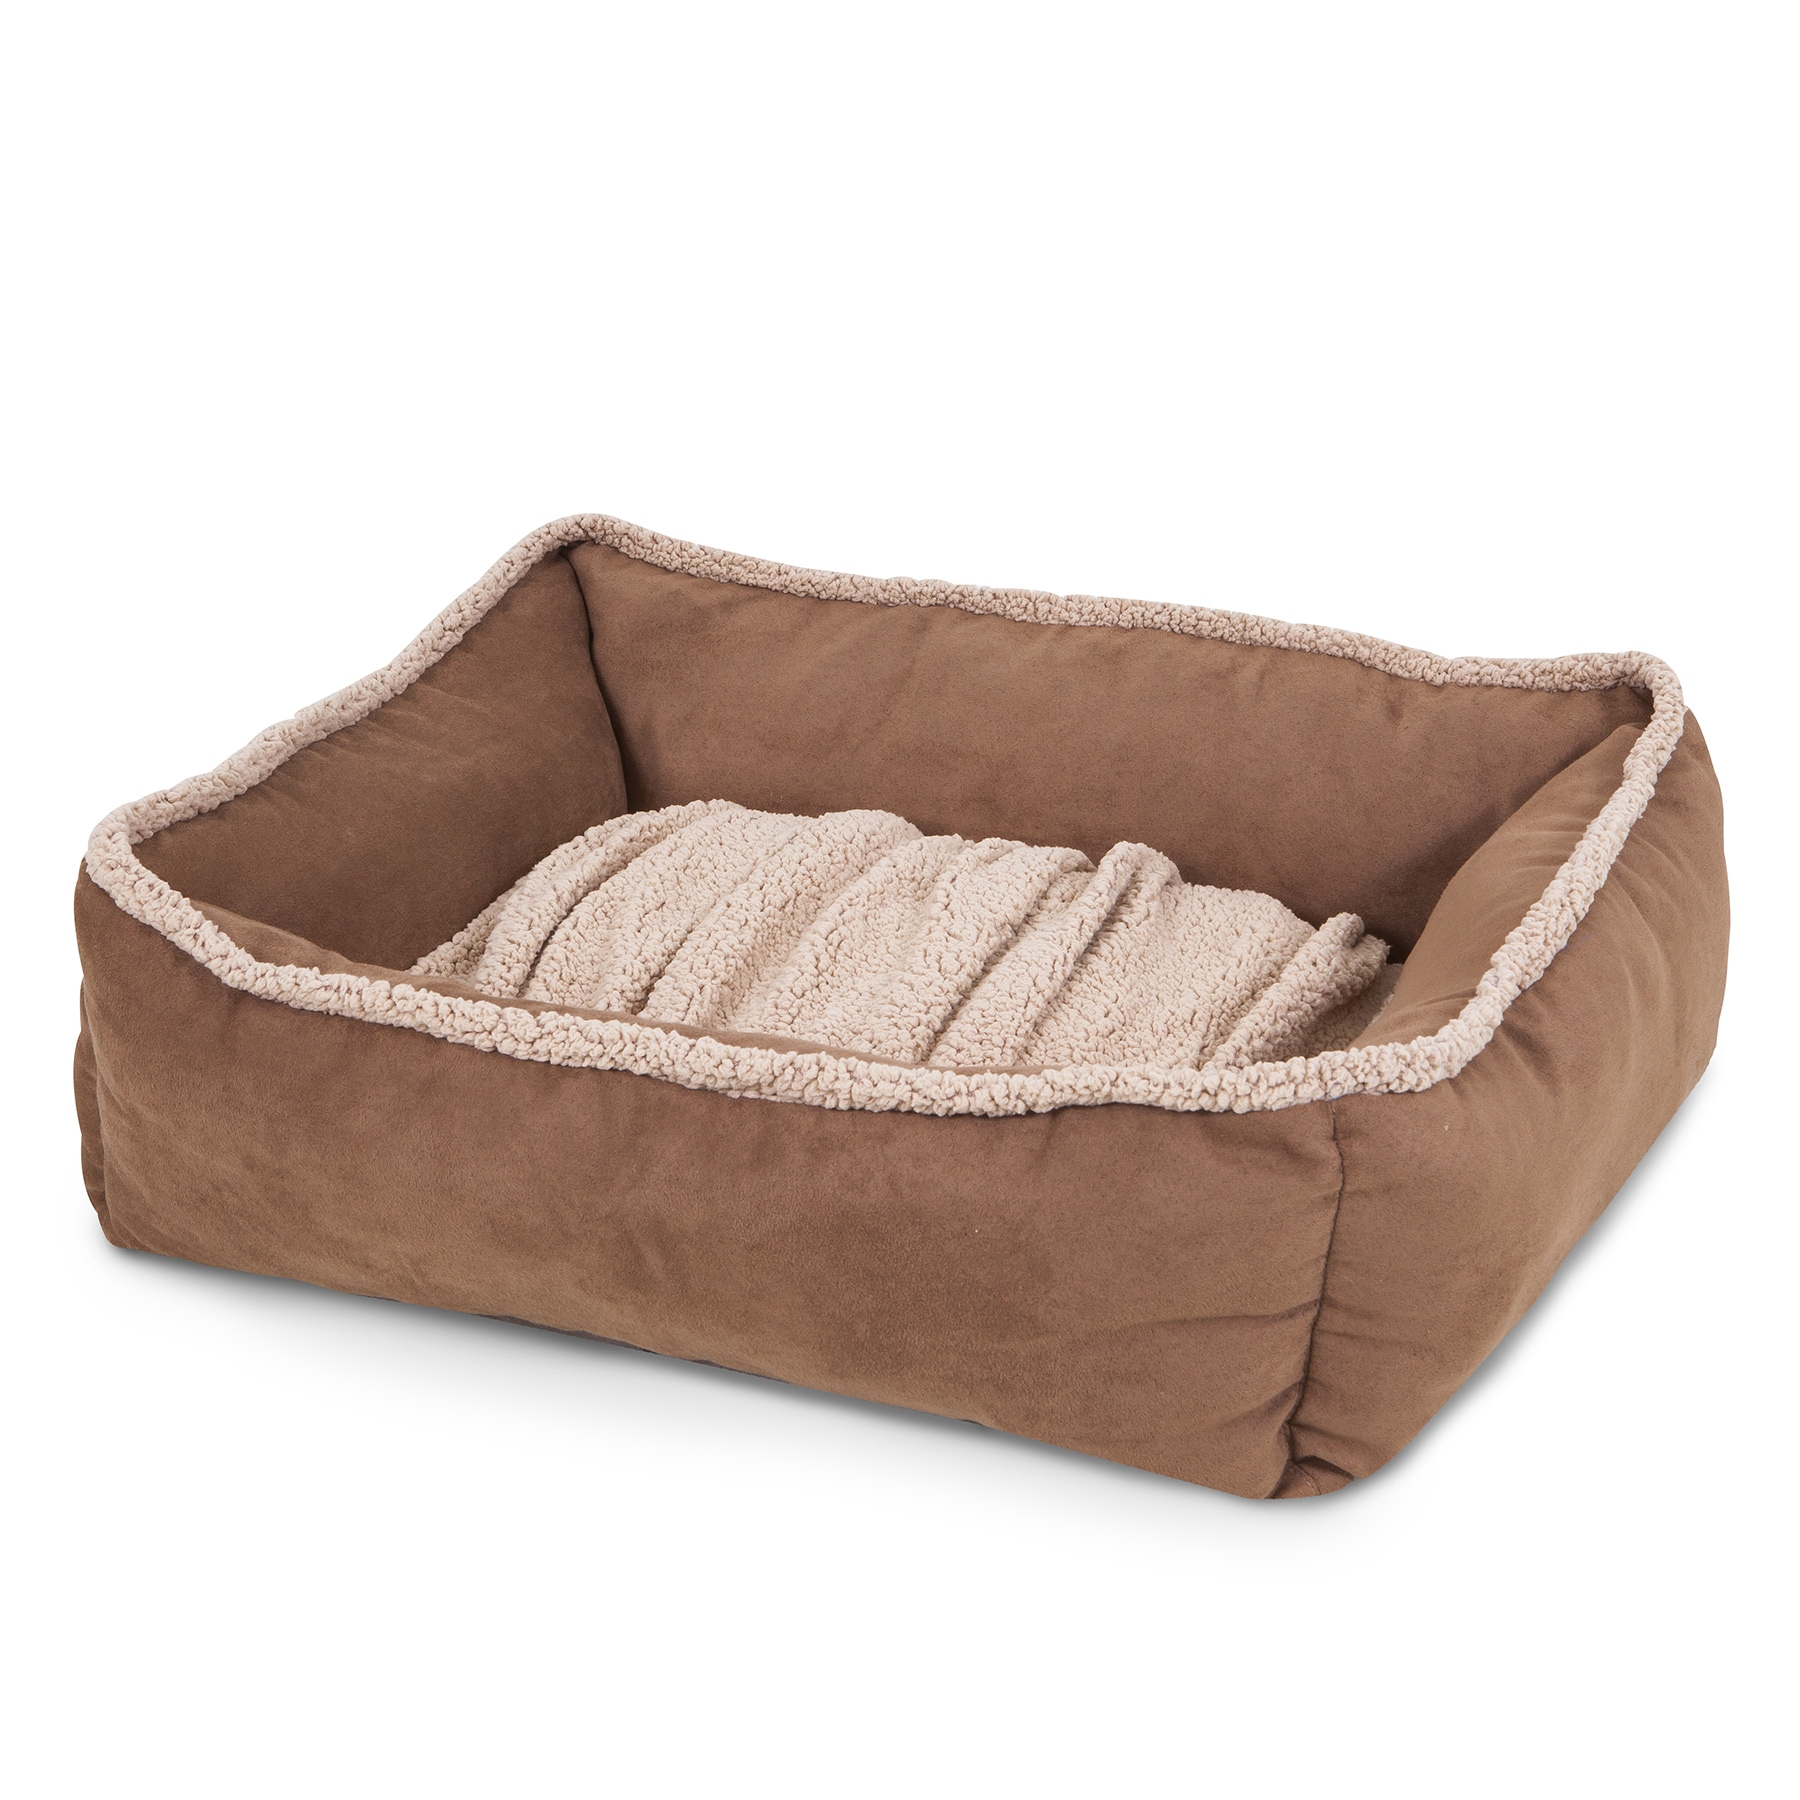 Aspen Pet Shearling Lounger with Dig N Burrow Dog Bed (La...